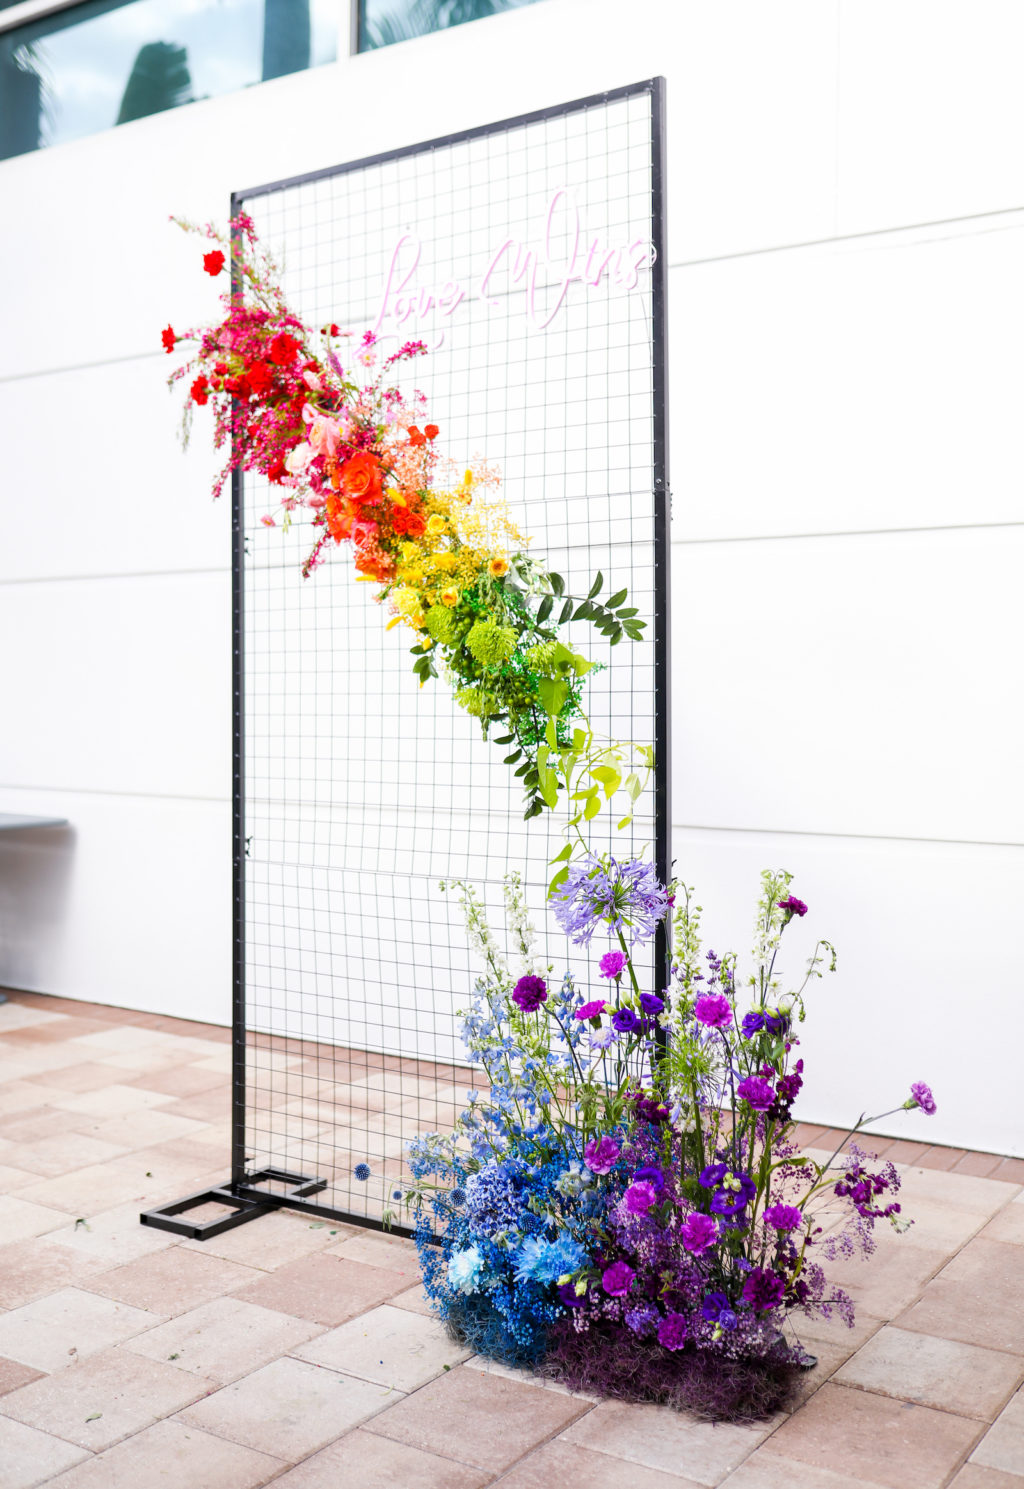 Modern Gay LGBTQ+ Pride Wedding Ceremony Decor, Rectangle Black Metal Grid Mesh Arch with Colorful Rainbow Pink, Red, Yellow, Green, Blue and Purple Flowers and Neon Pink Sign   Tampa Bay Wedding Planner Stephany Perry Events